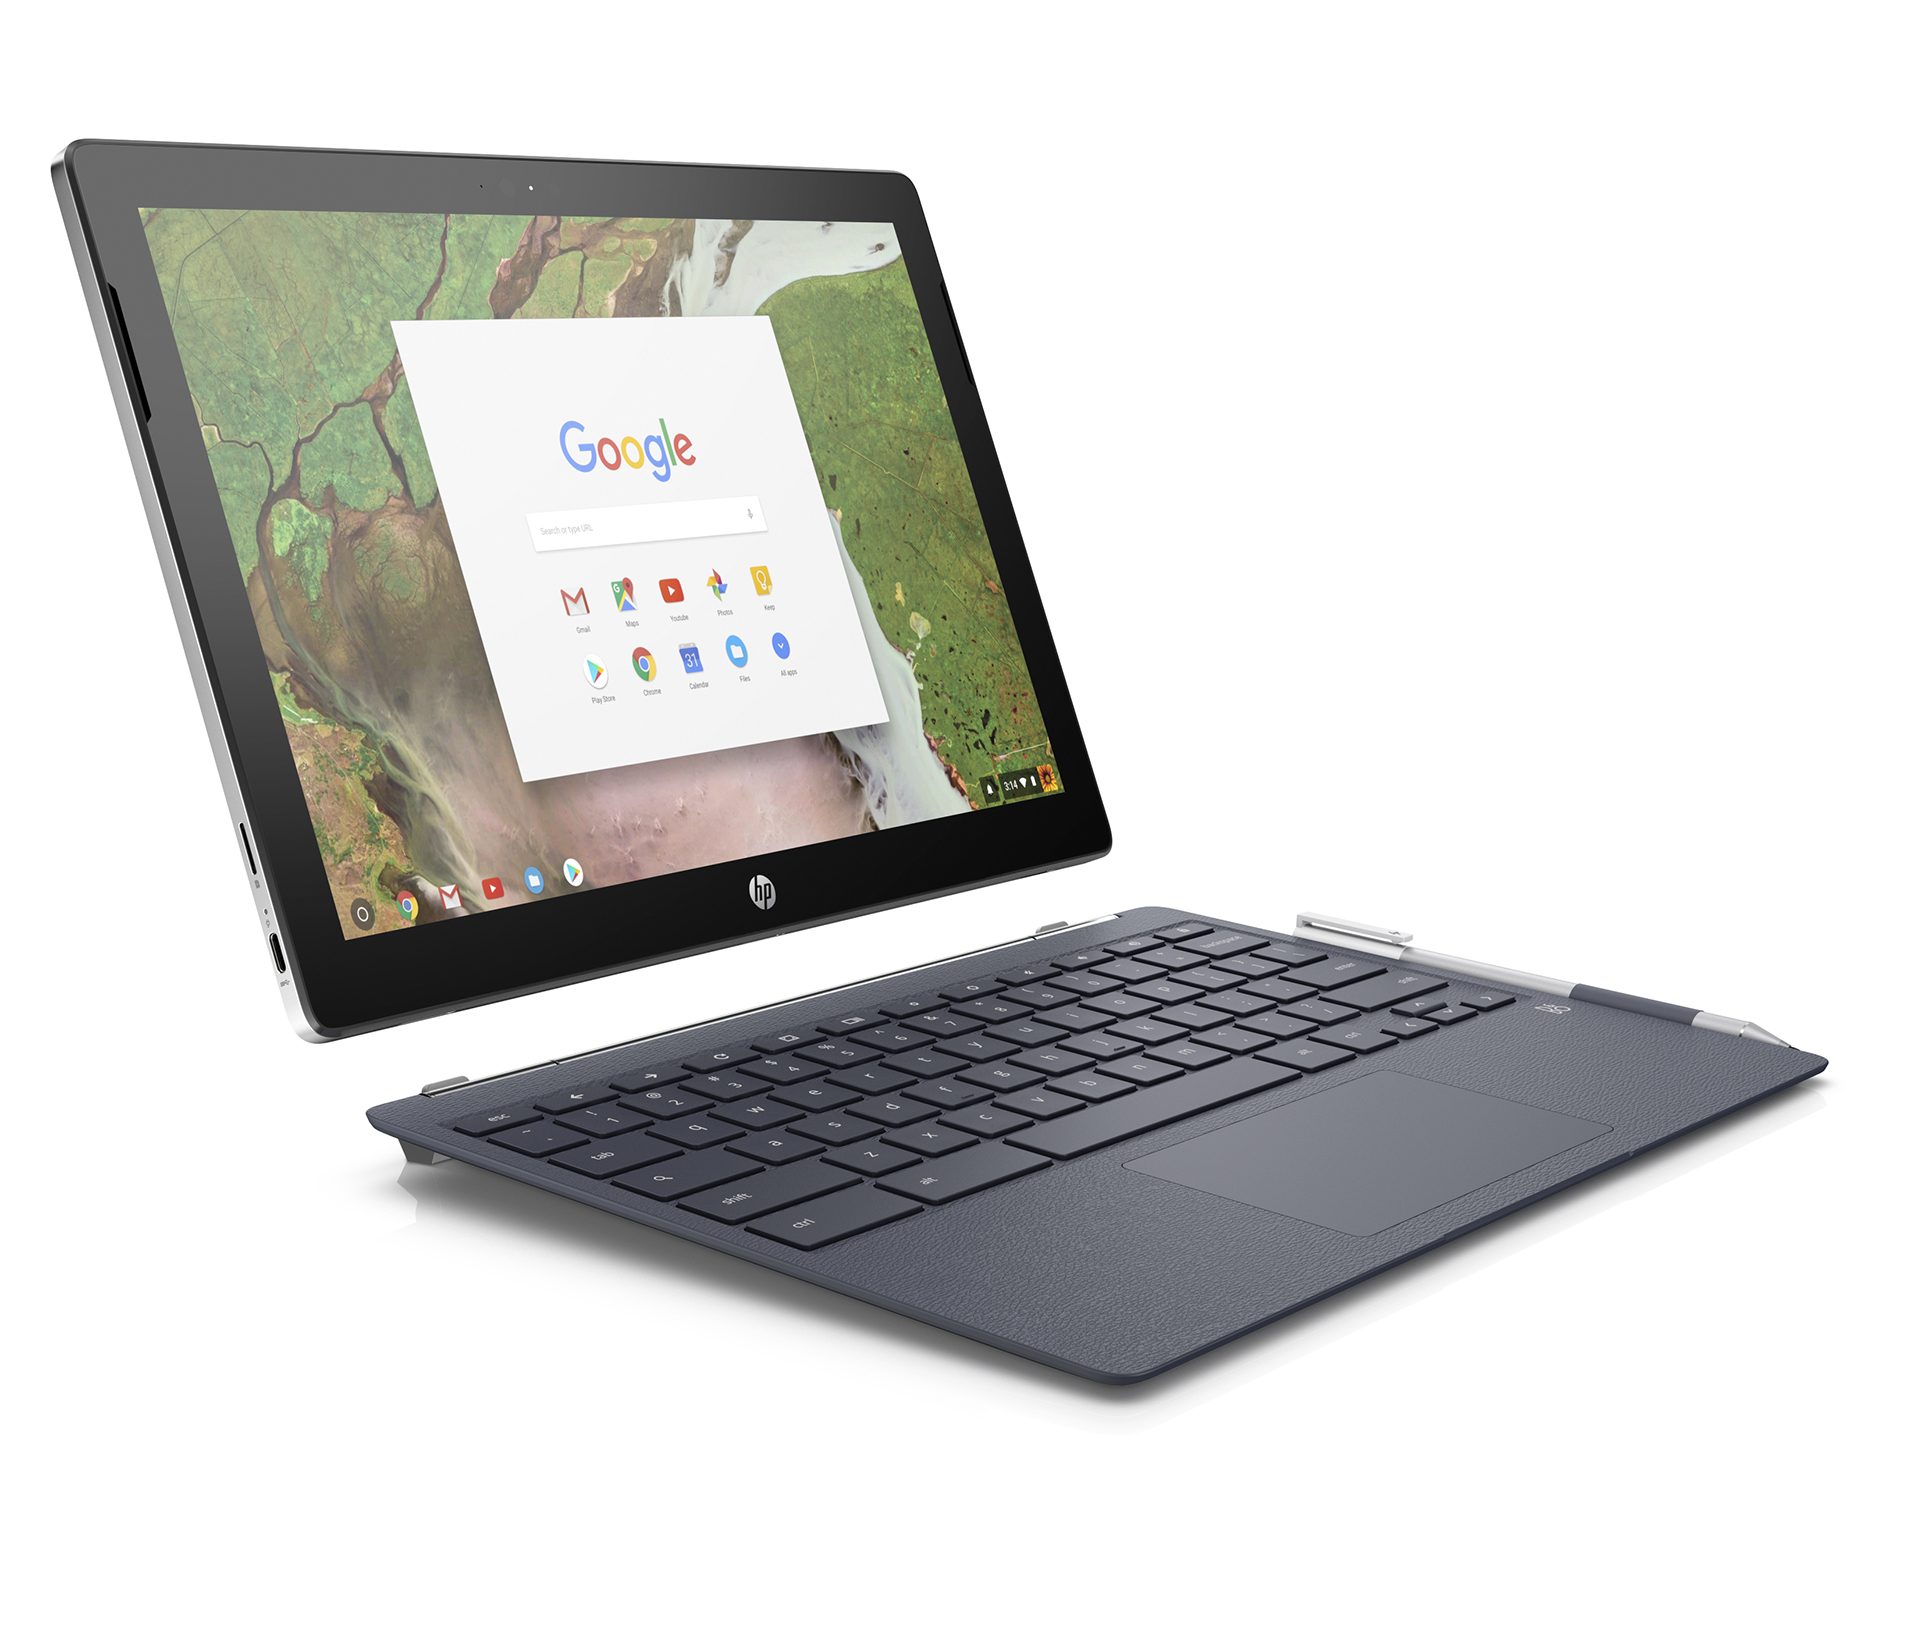 HP jumps on Chrome OS tablet bandwagon with new Chromebook